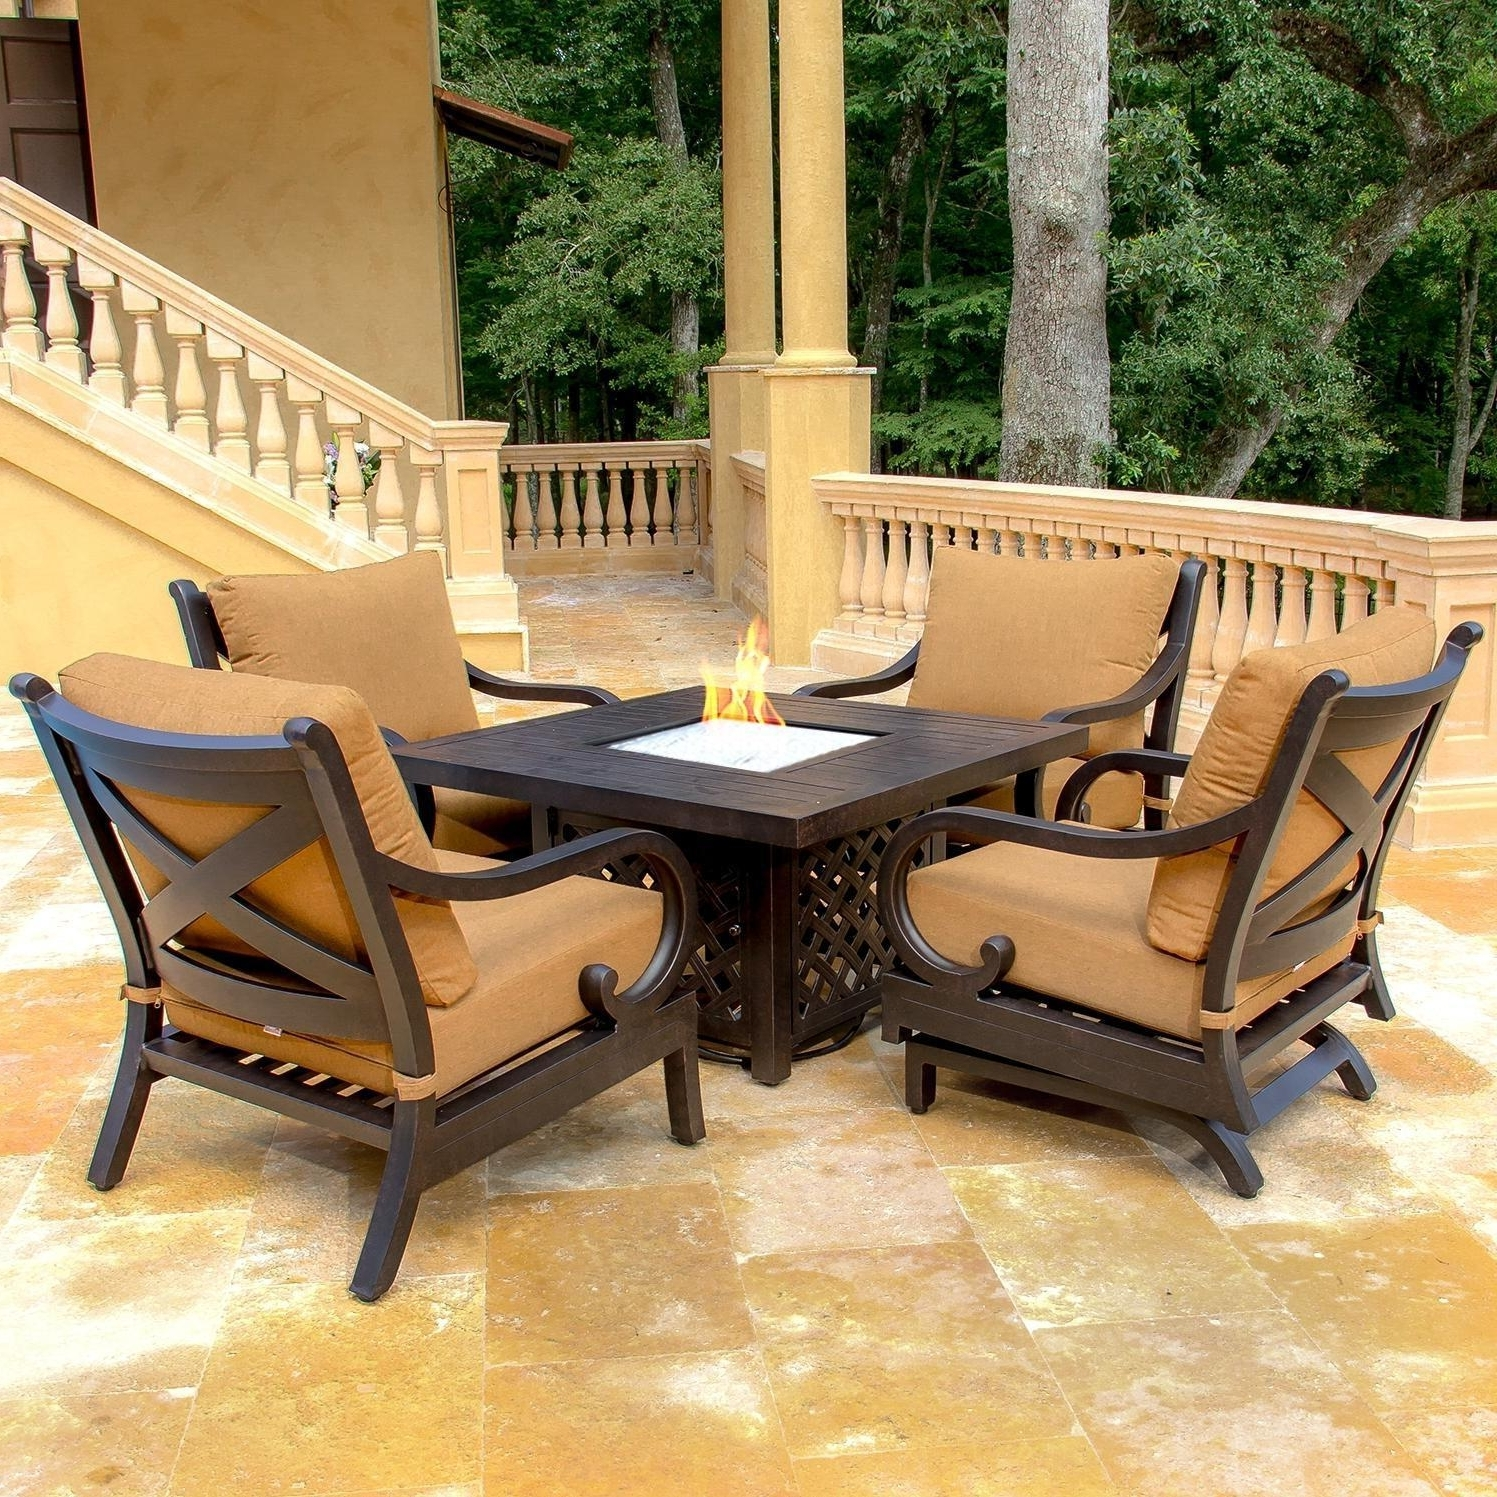 11 Patio Furniture Fire Pit (View 13 of 20)